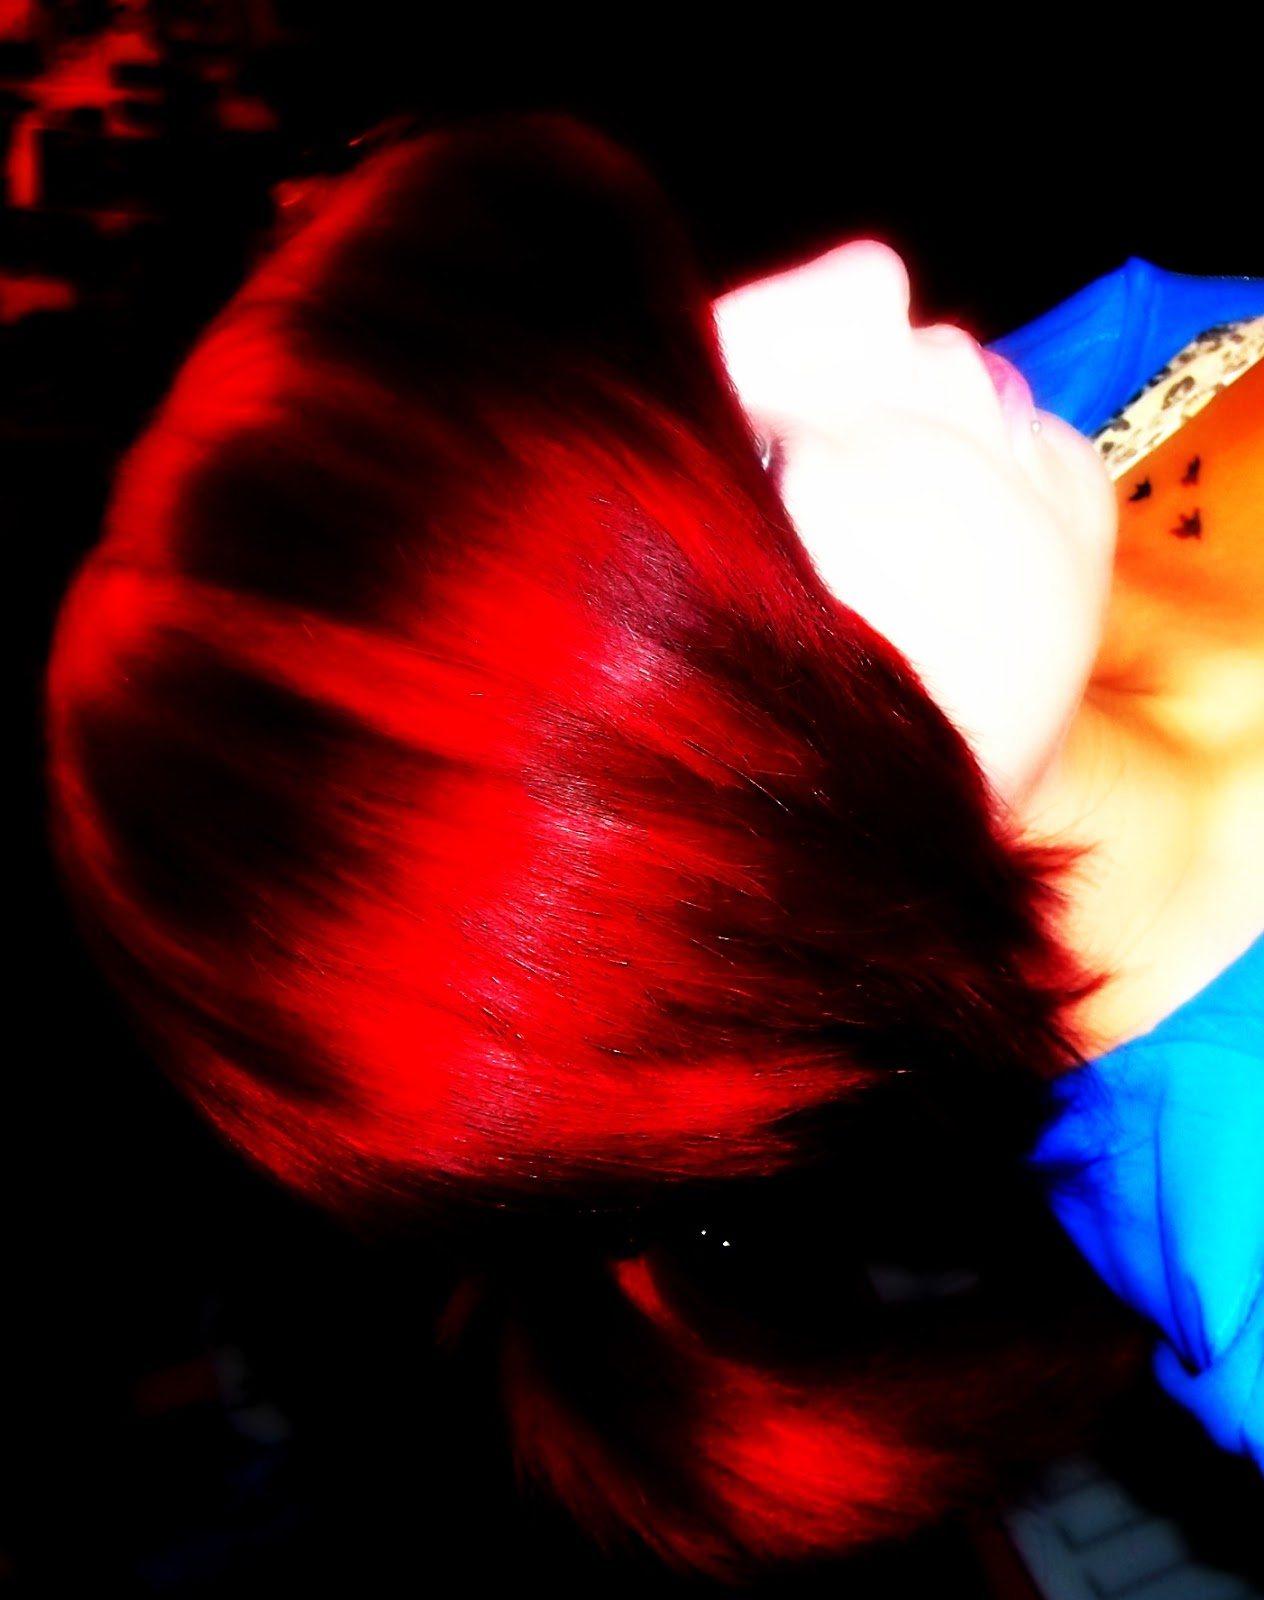 Photo of Ofaglasgowgirl with red hair